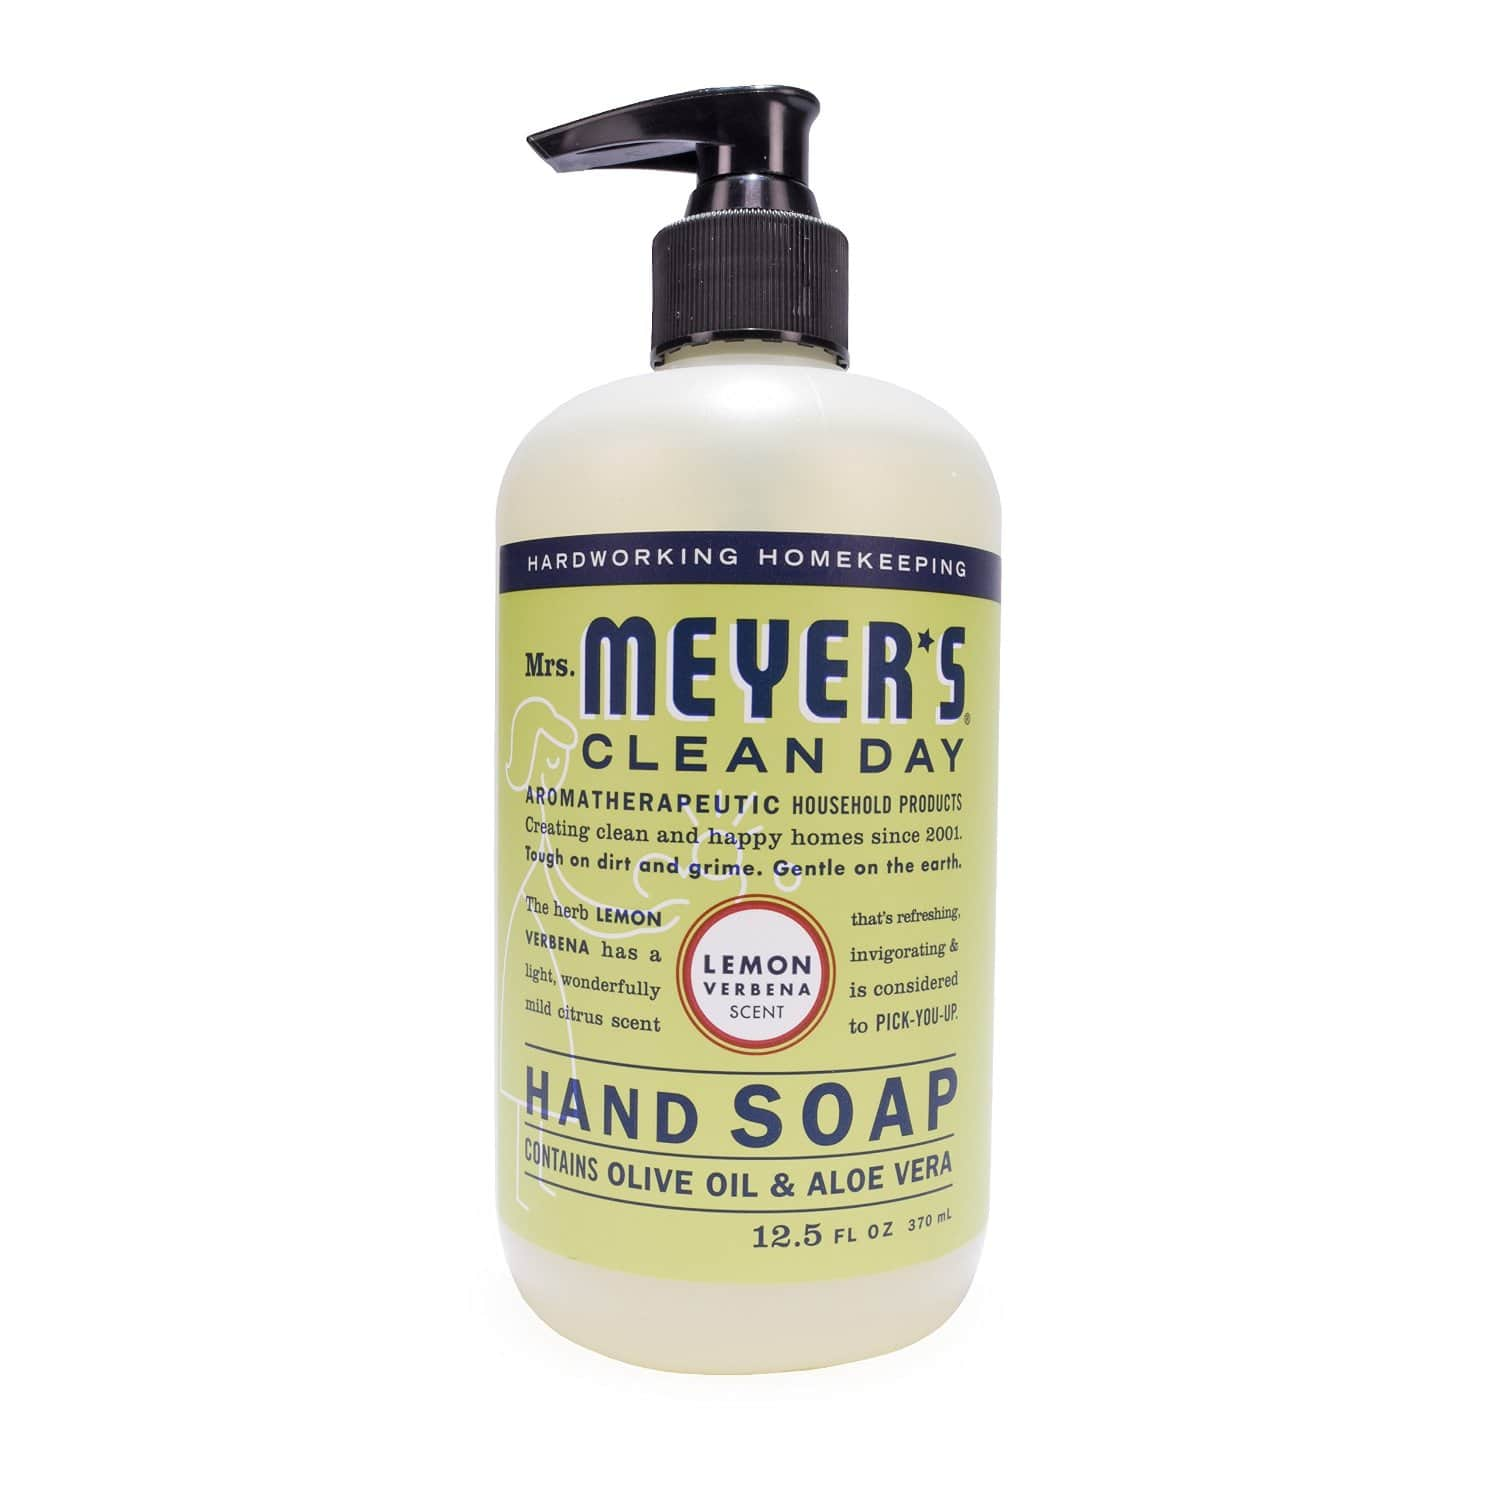 Mrs. Meyers Household Essentials: 3-Pack 12.5oz Hand Soap  from $7.20 & More + Free S&H